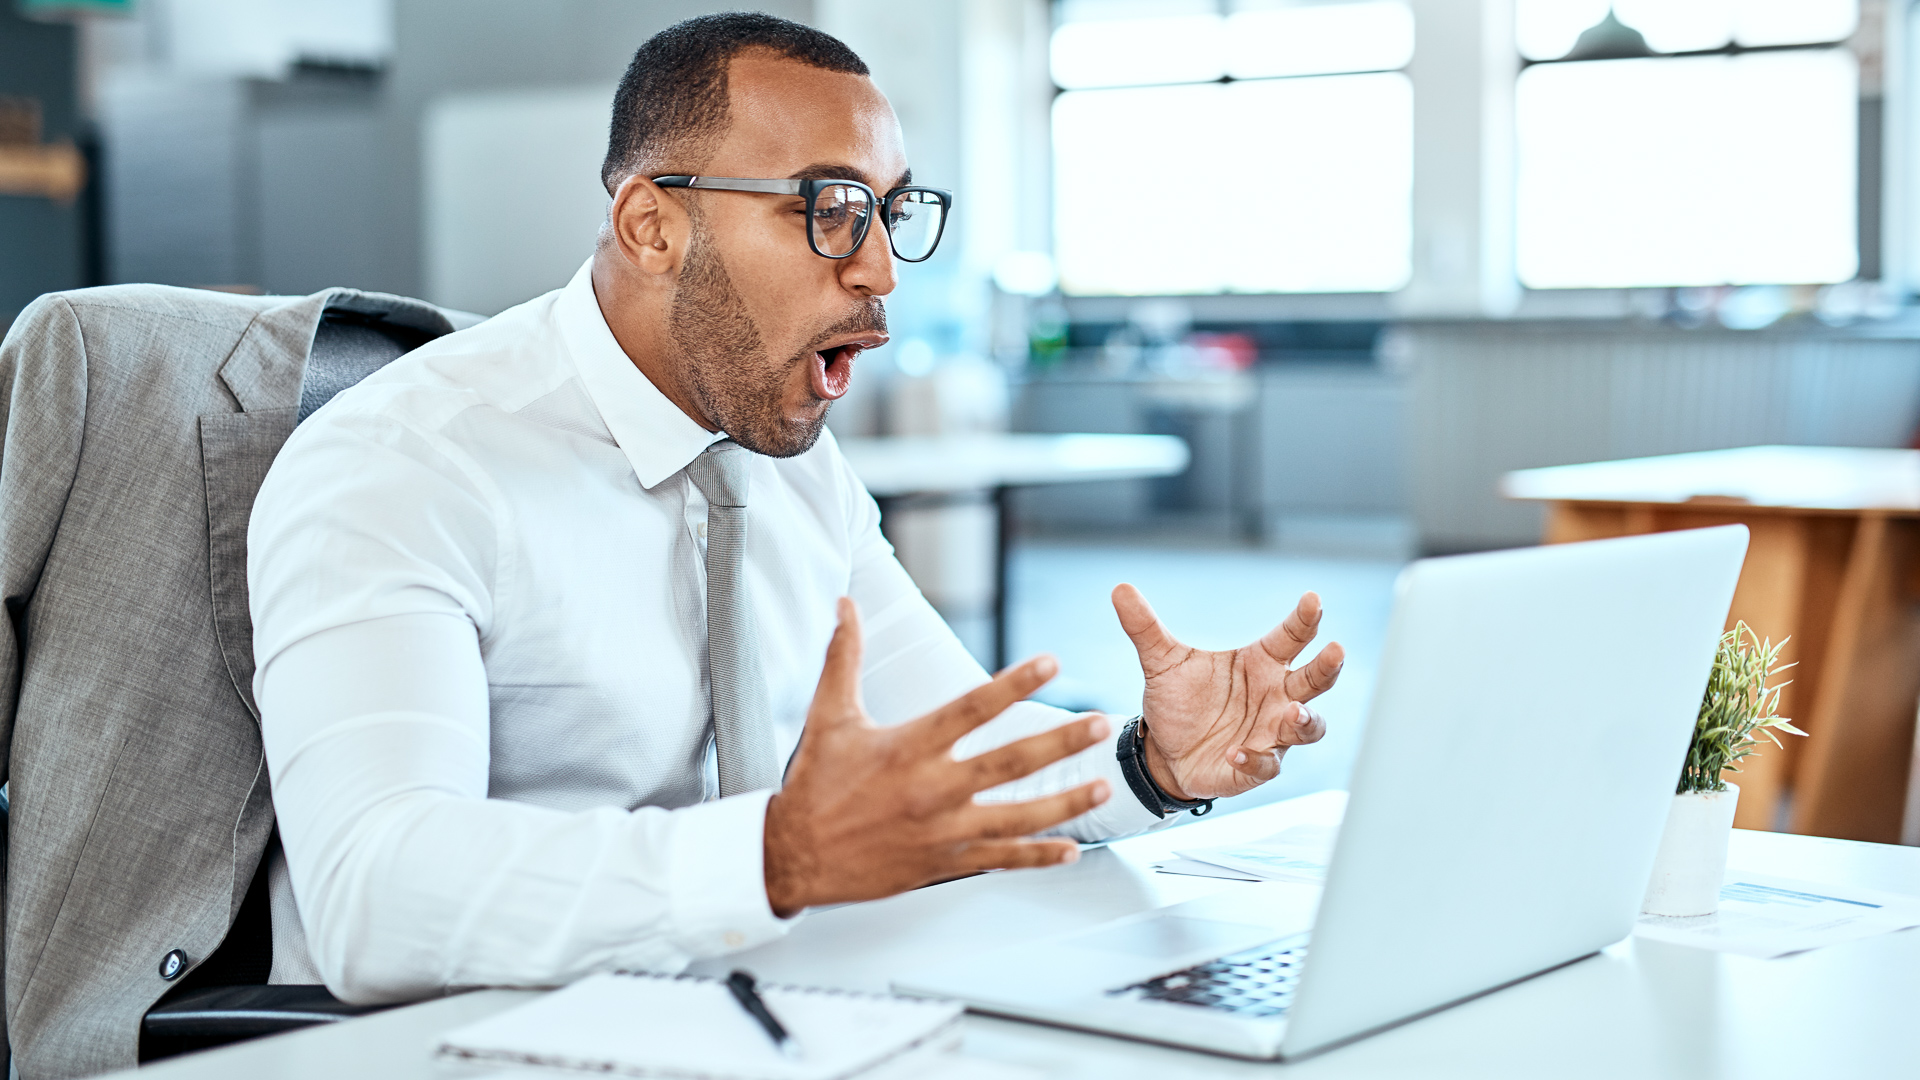 Shot of a young businessman looking surprised while working on a laptop in an office.